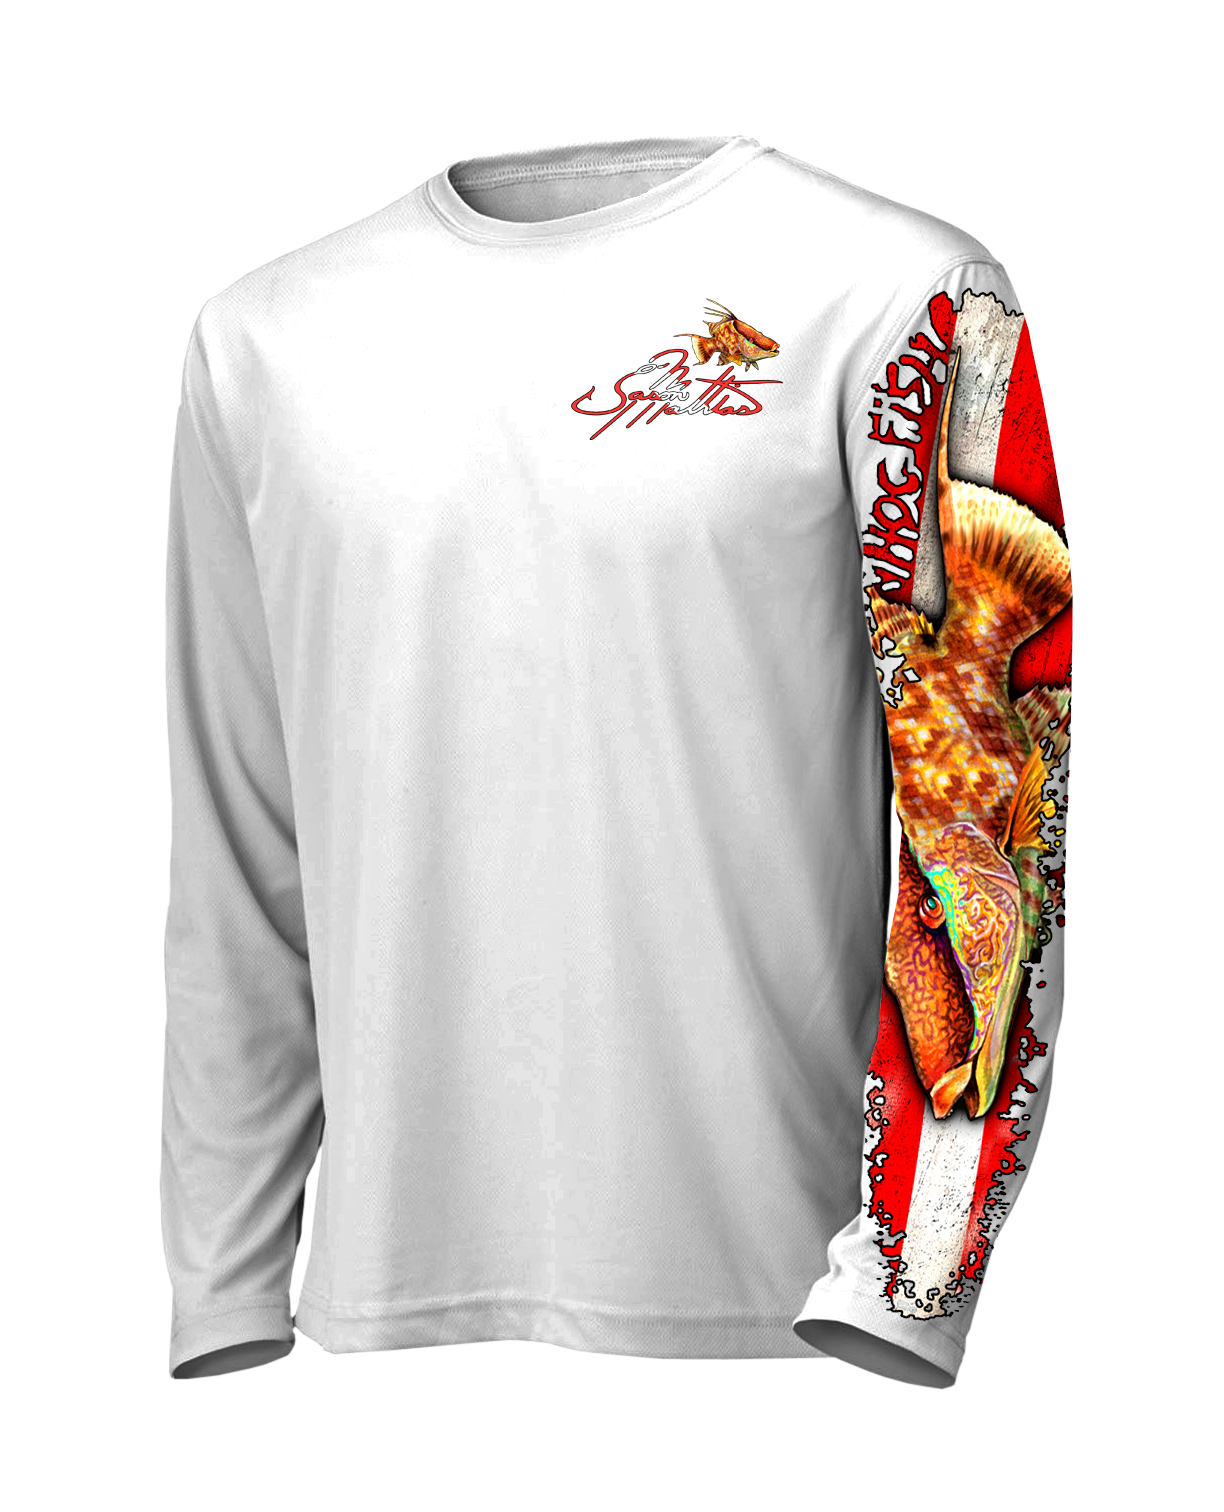 jason-mathias-shirt-line-front-hogfish-dive-shirt.png